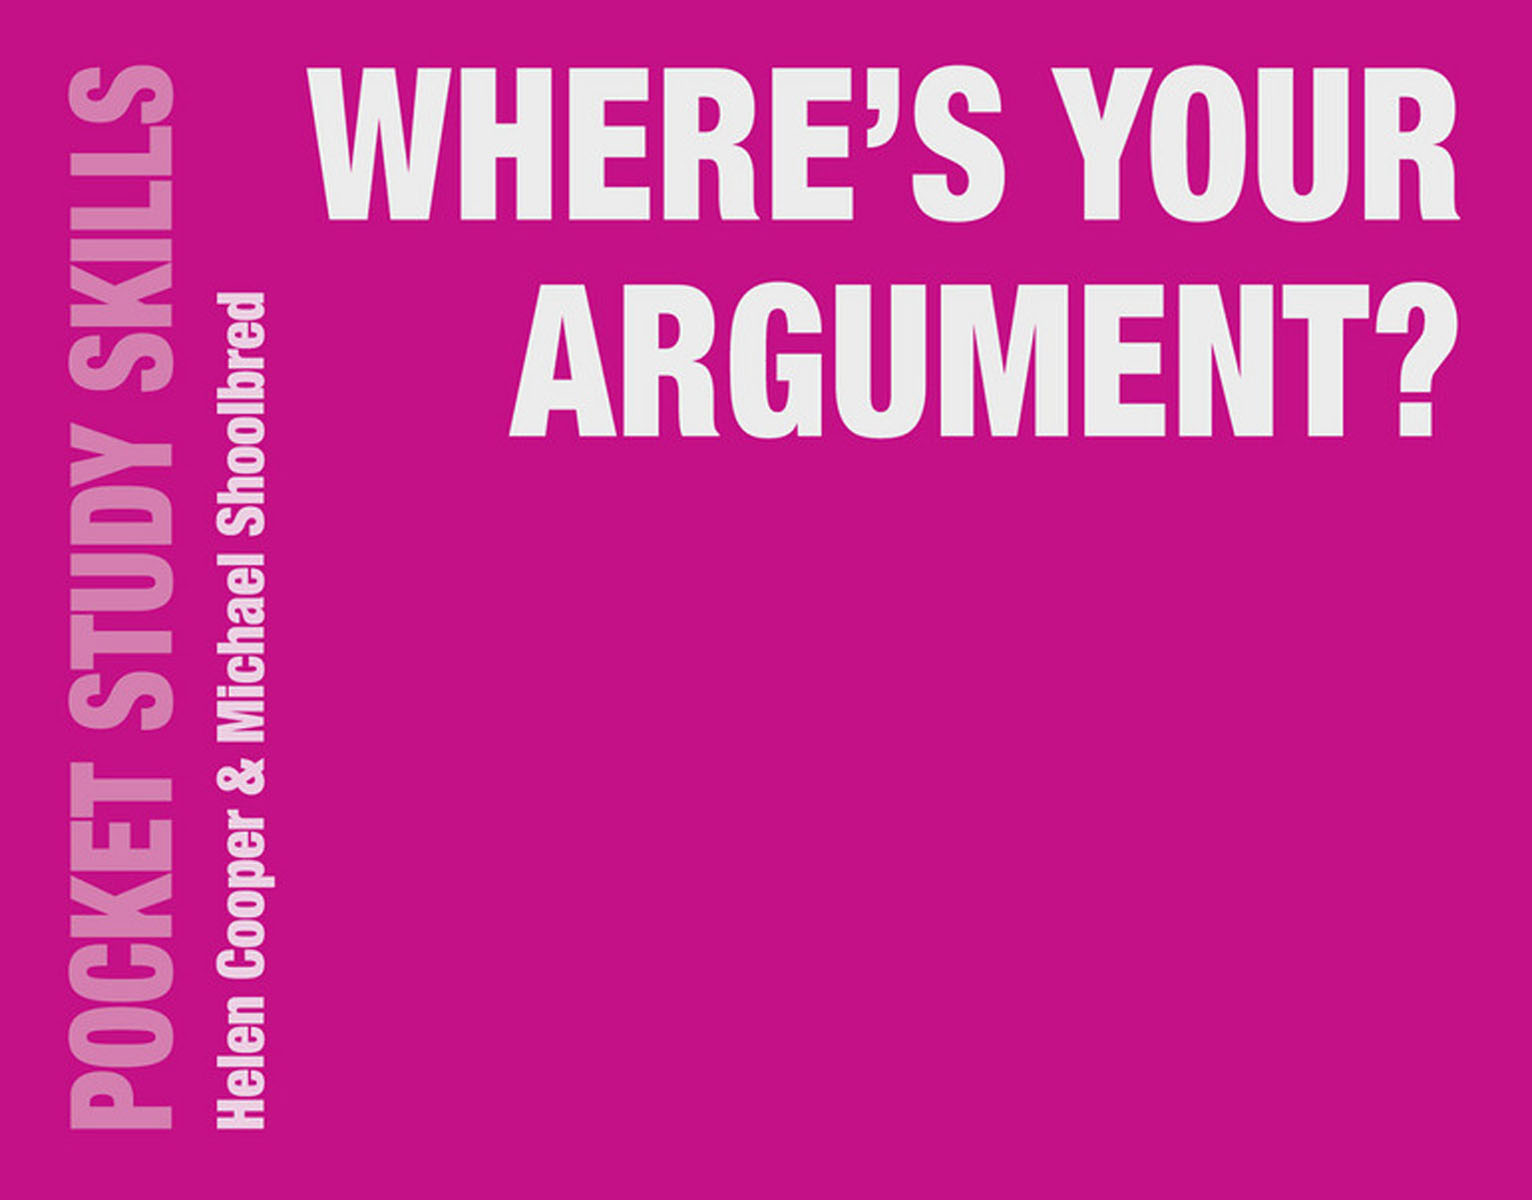 Where's Your Argument?